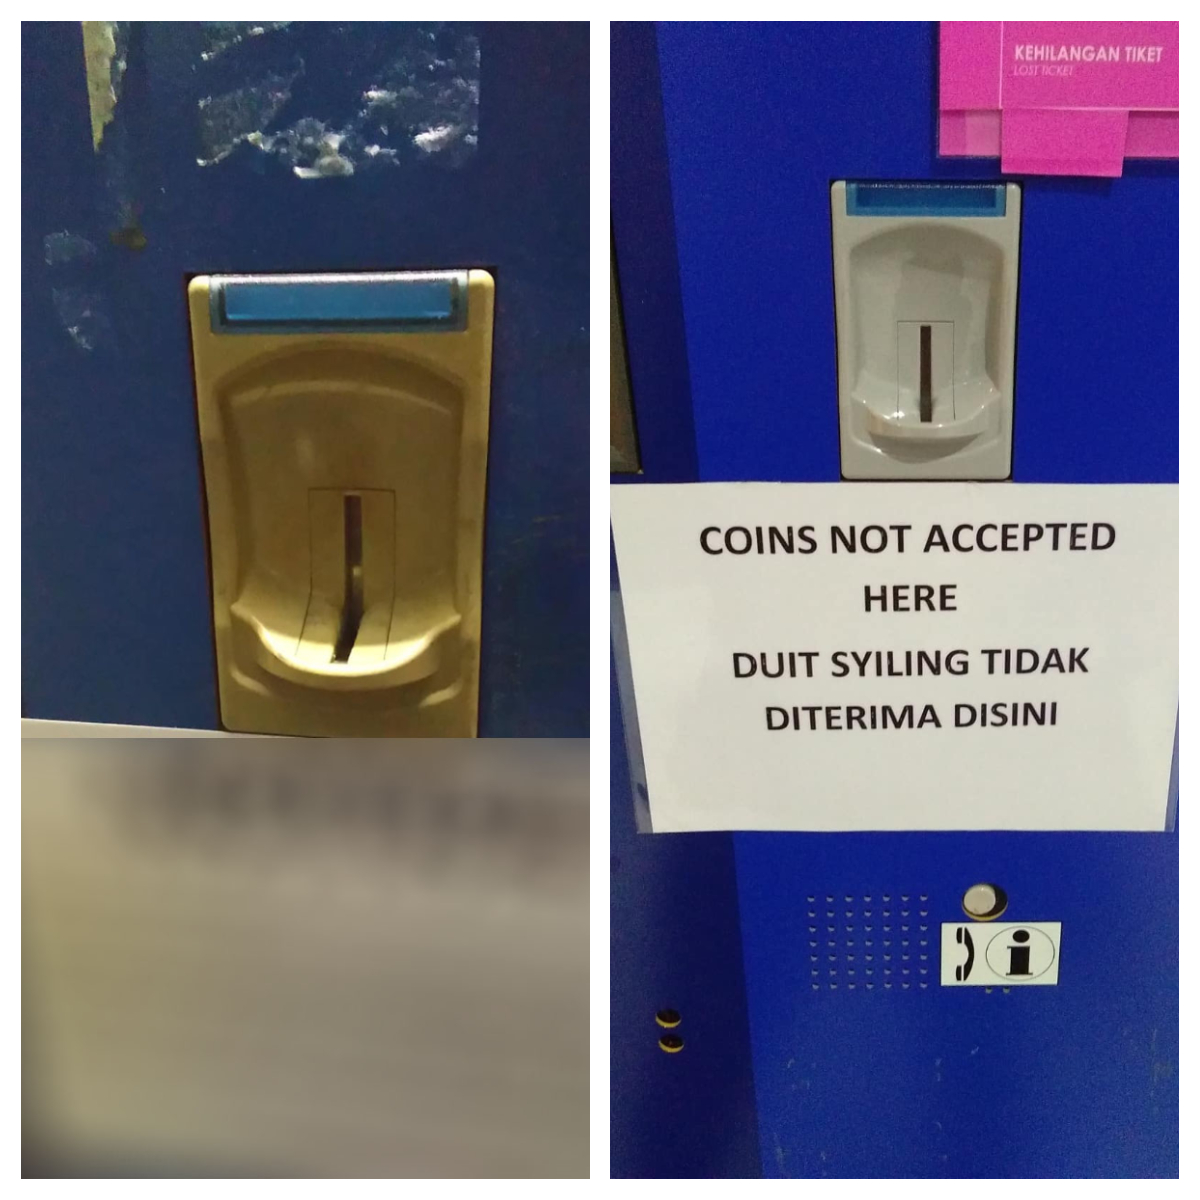 These are at two different places. They even blocked the lubang to insert coins.